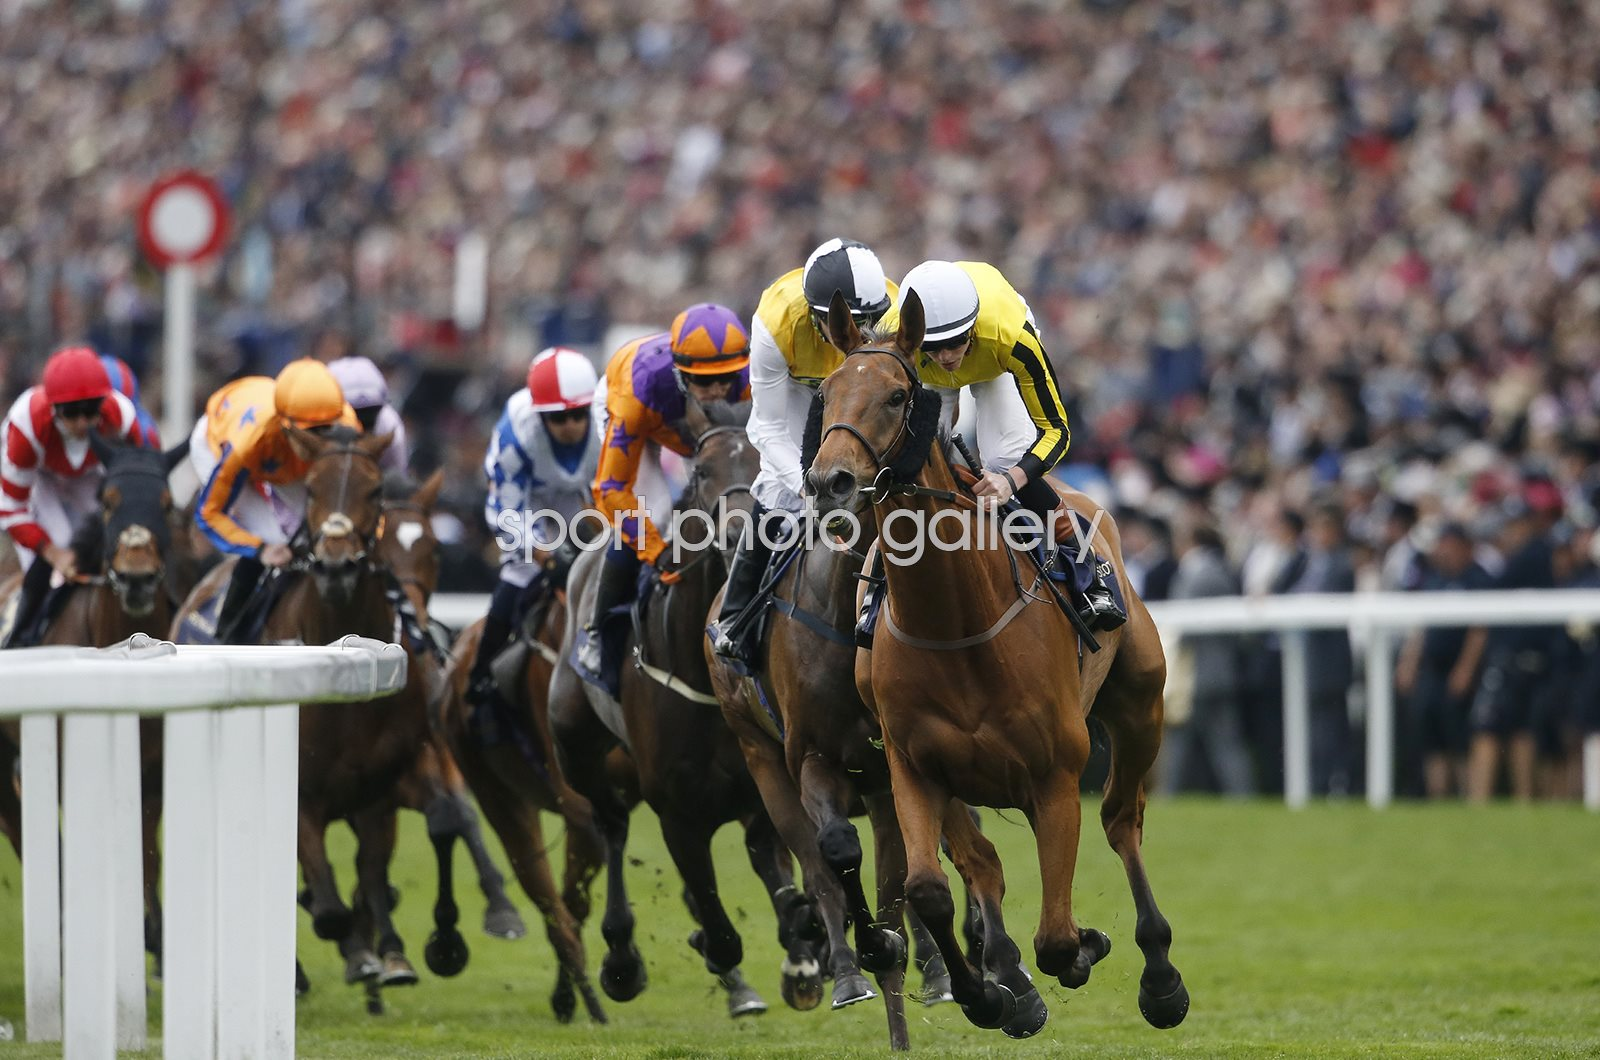 James Doyle & Big Orange win Gold Cup Royal Ascot 2017